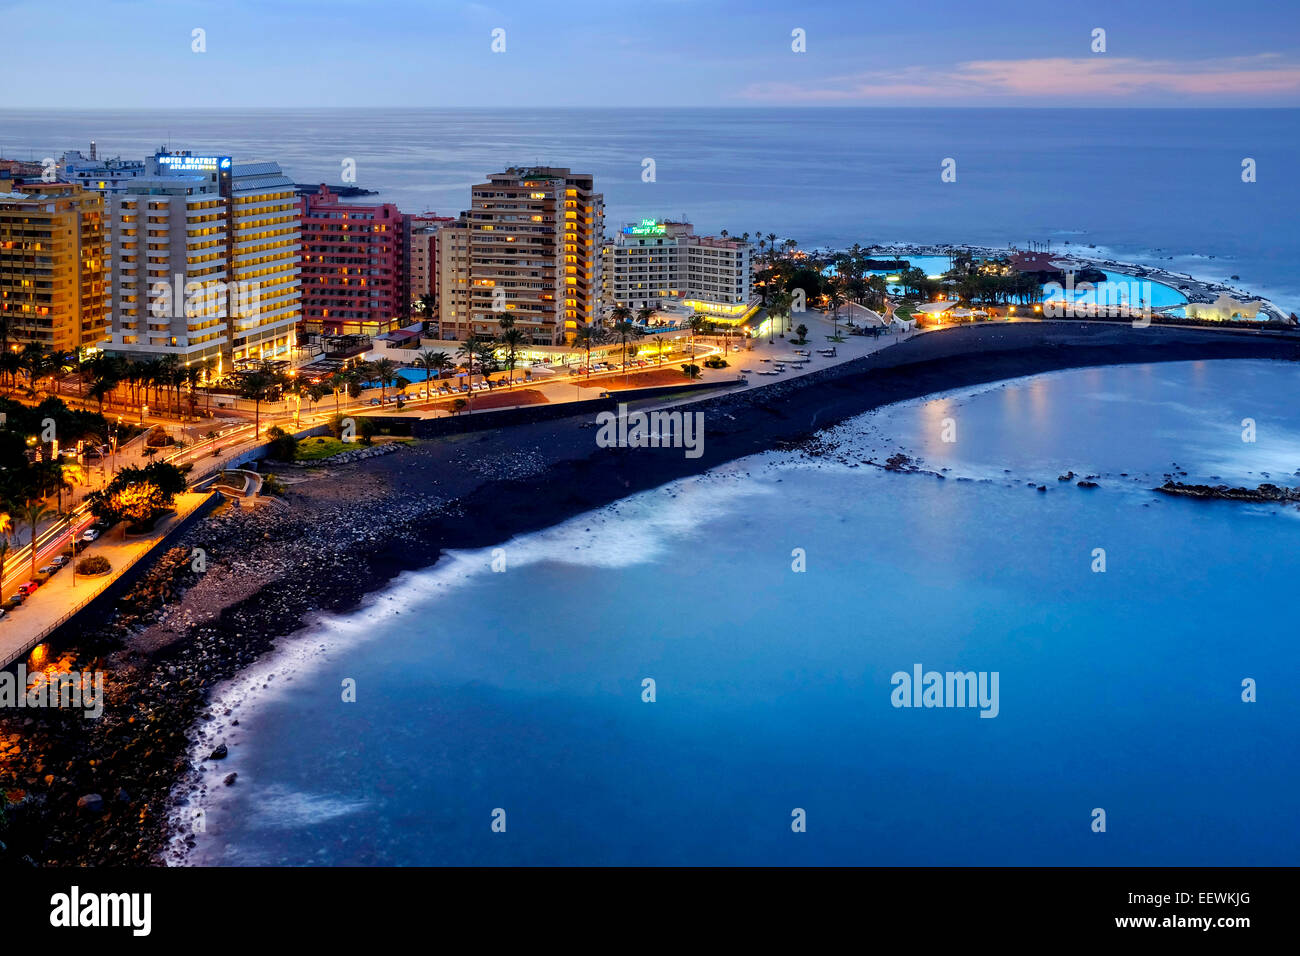 Playa martianez puerto de la cruz tenerife canary islands spain stock photo royalty free - Playa puerto de la cruz tenerife ...